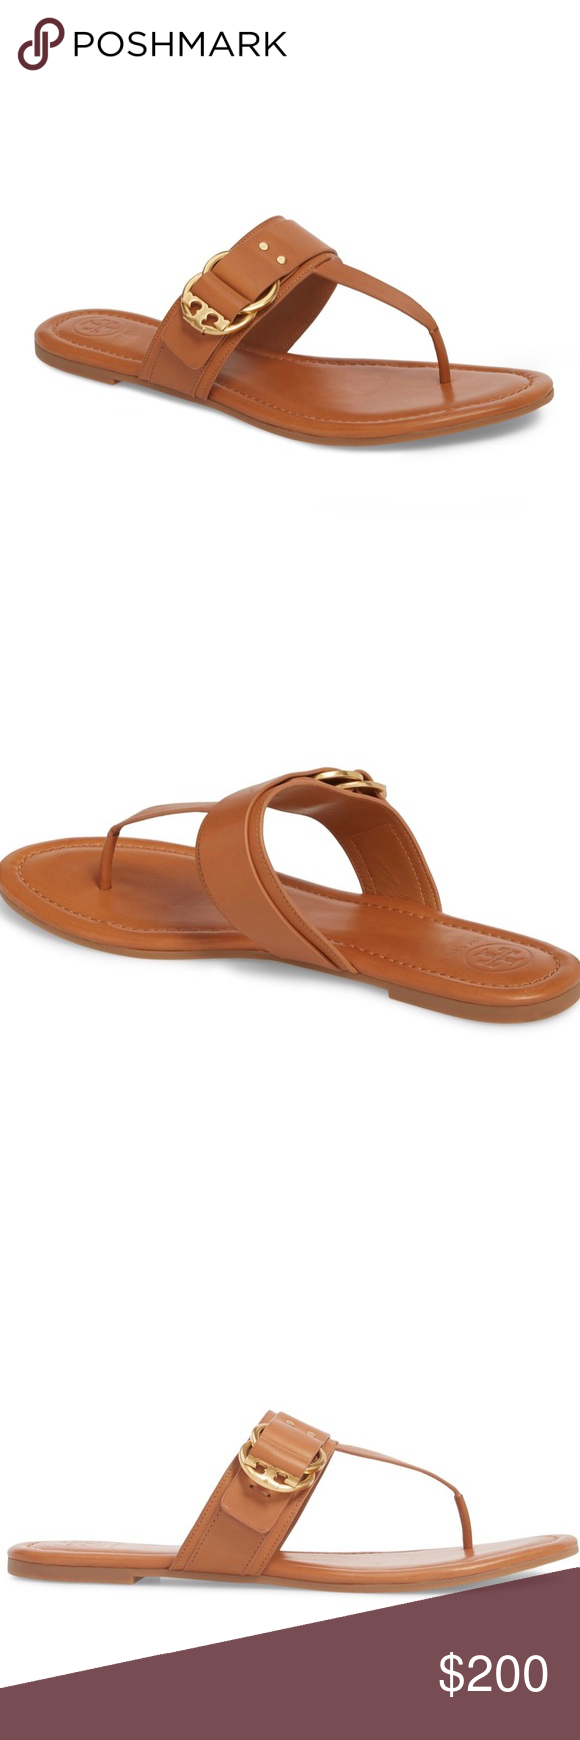 94bb8e04305 NWT Tory Burch Marsden Flat Thong Sandal. Comes with original packaging and  dust bag. Tory Burch Shoes Sandals